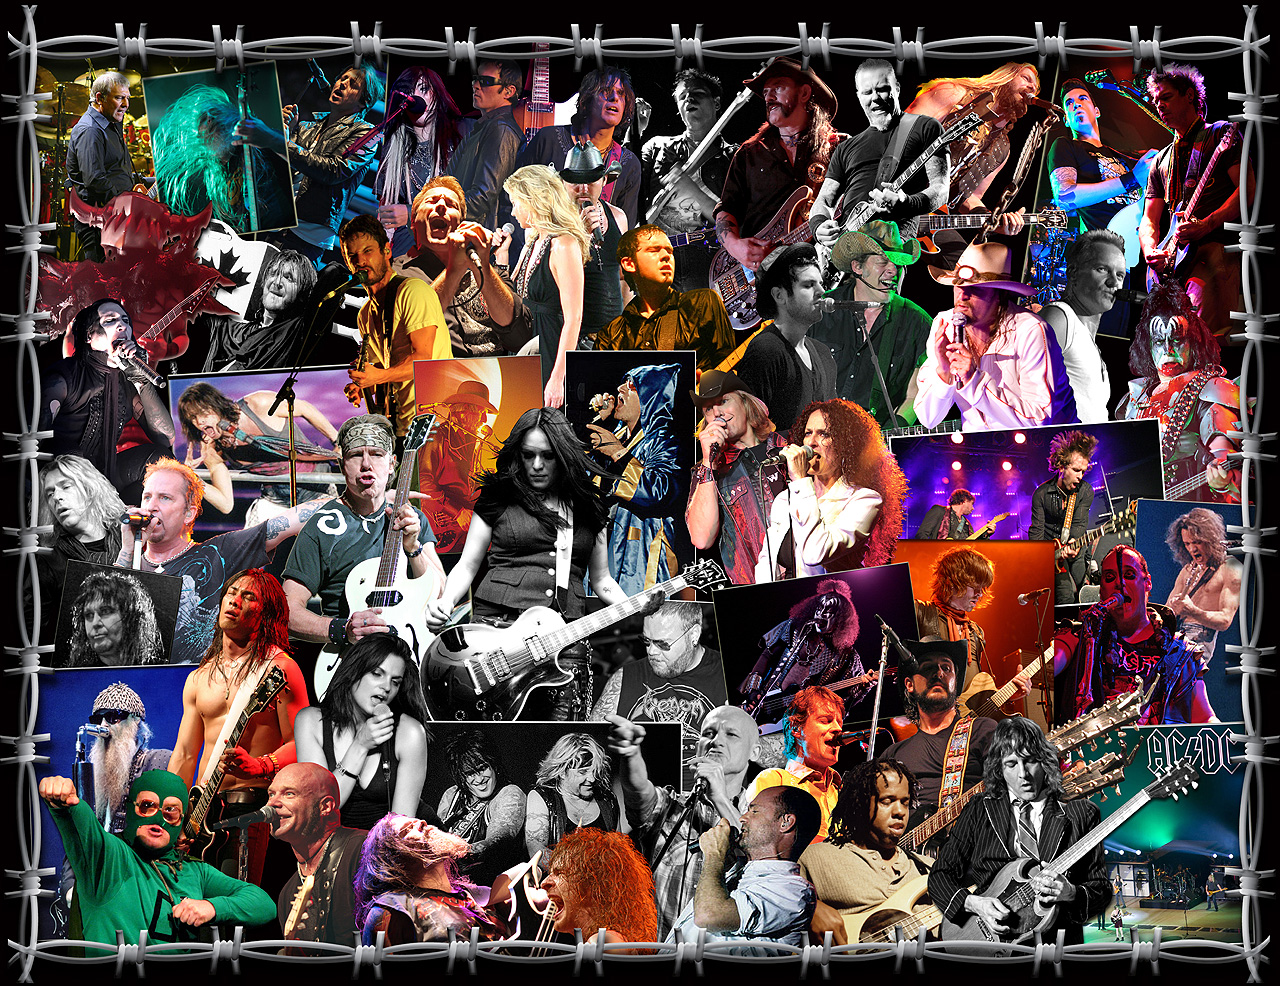 Get Unlimited Downloads of RoyaltyFree Classic Rock Music